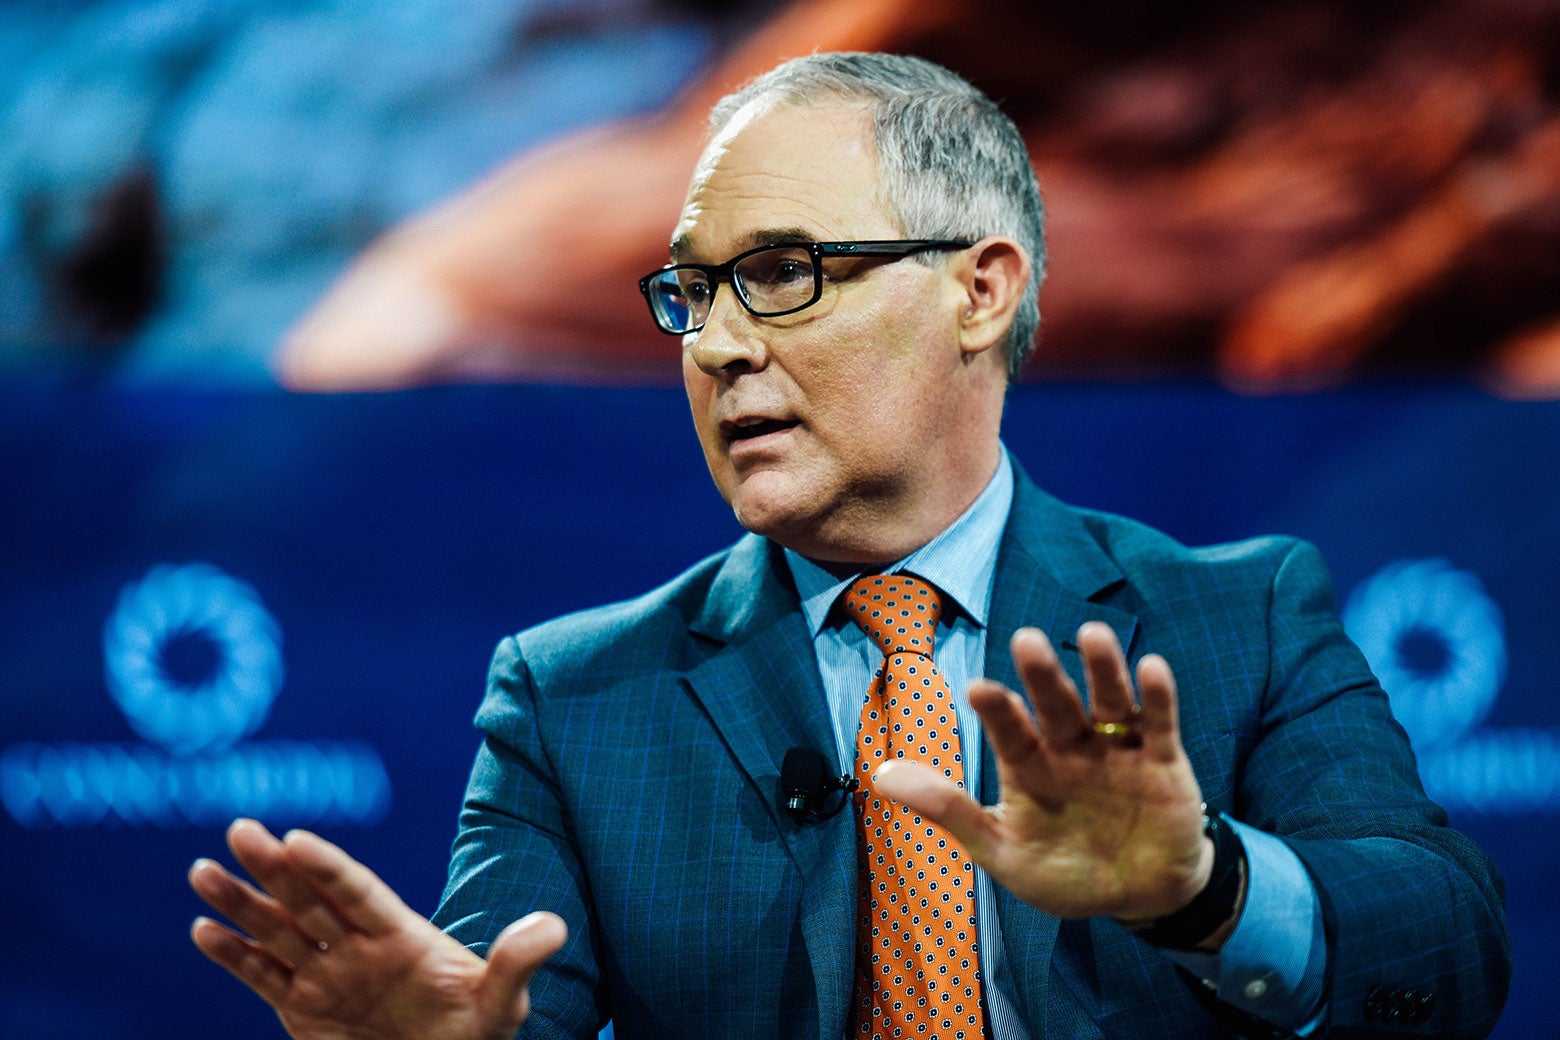 Scott Pruitt speaks at the 2017 Concordia Annual Summit on Sept. 19 in New York City.